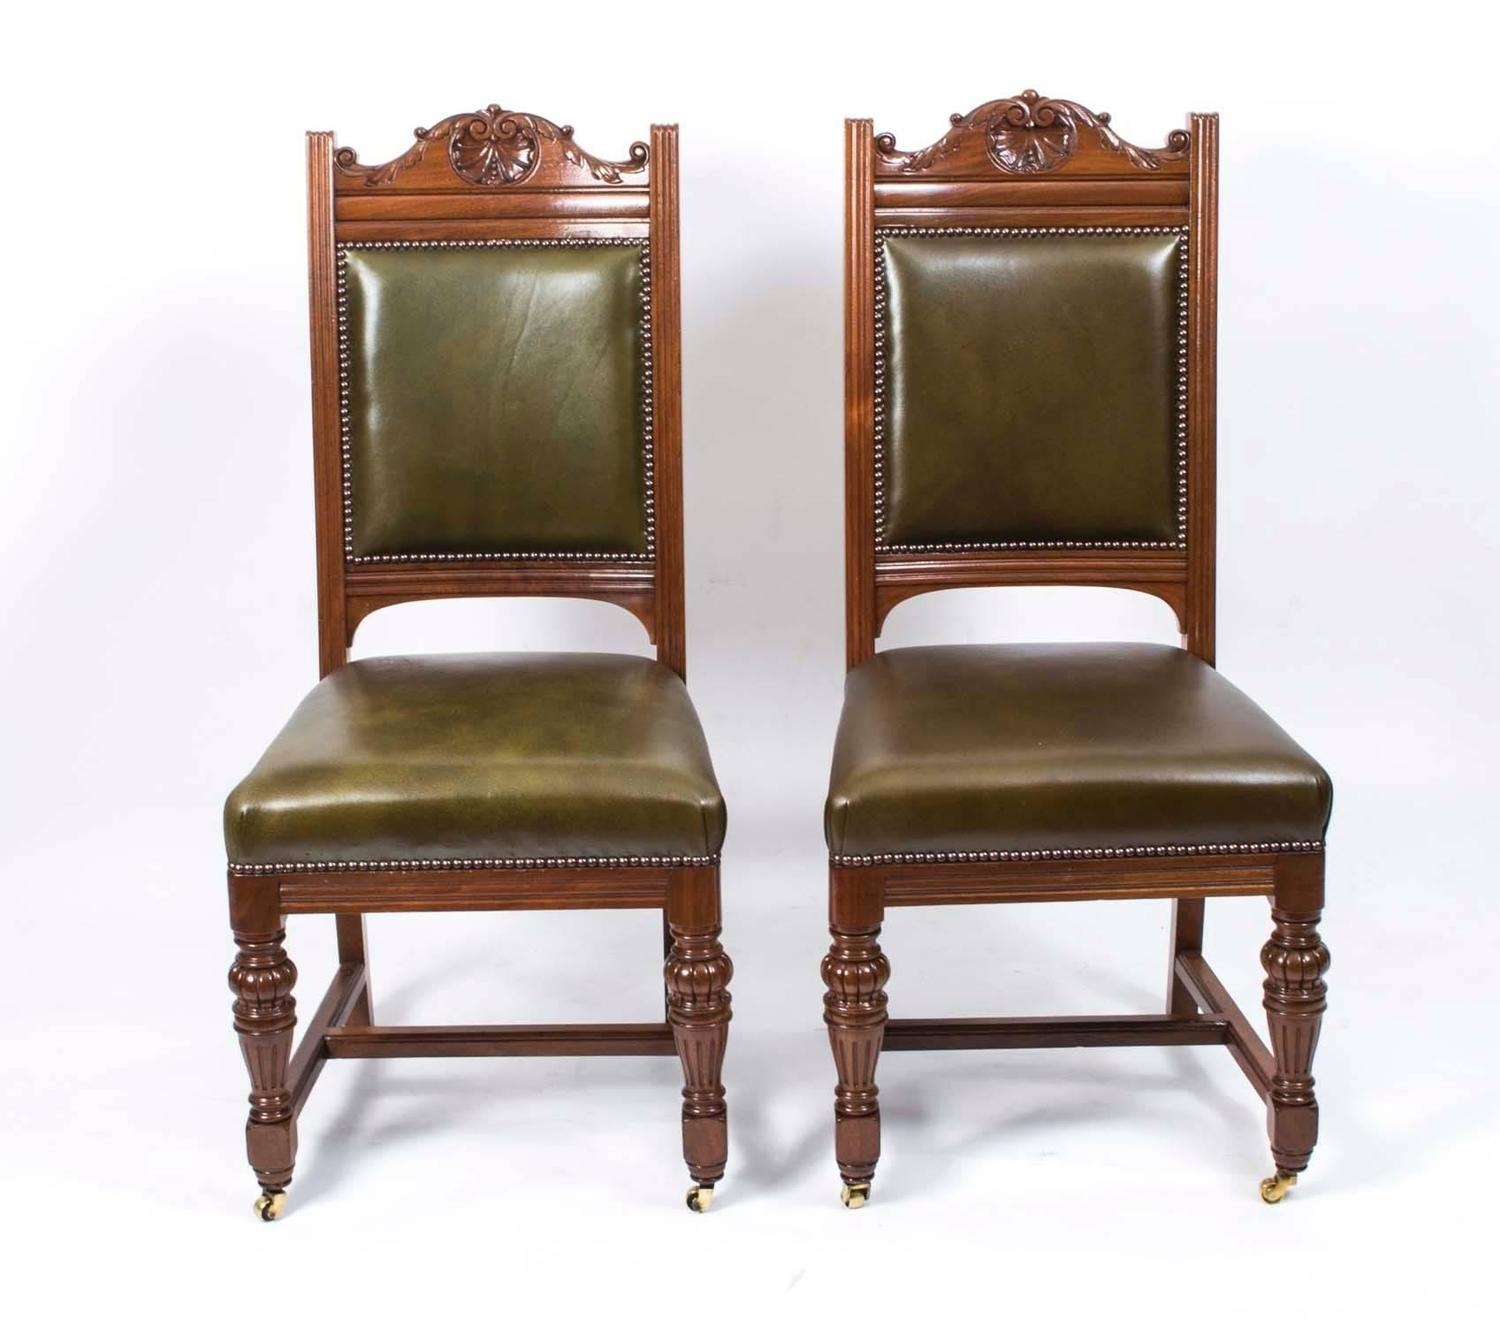 Antique victorian dining chairs - Antique